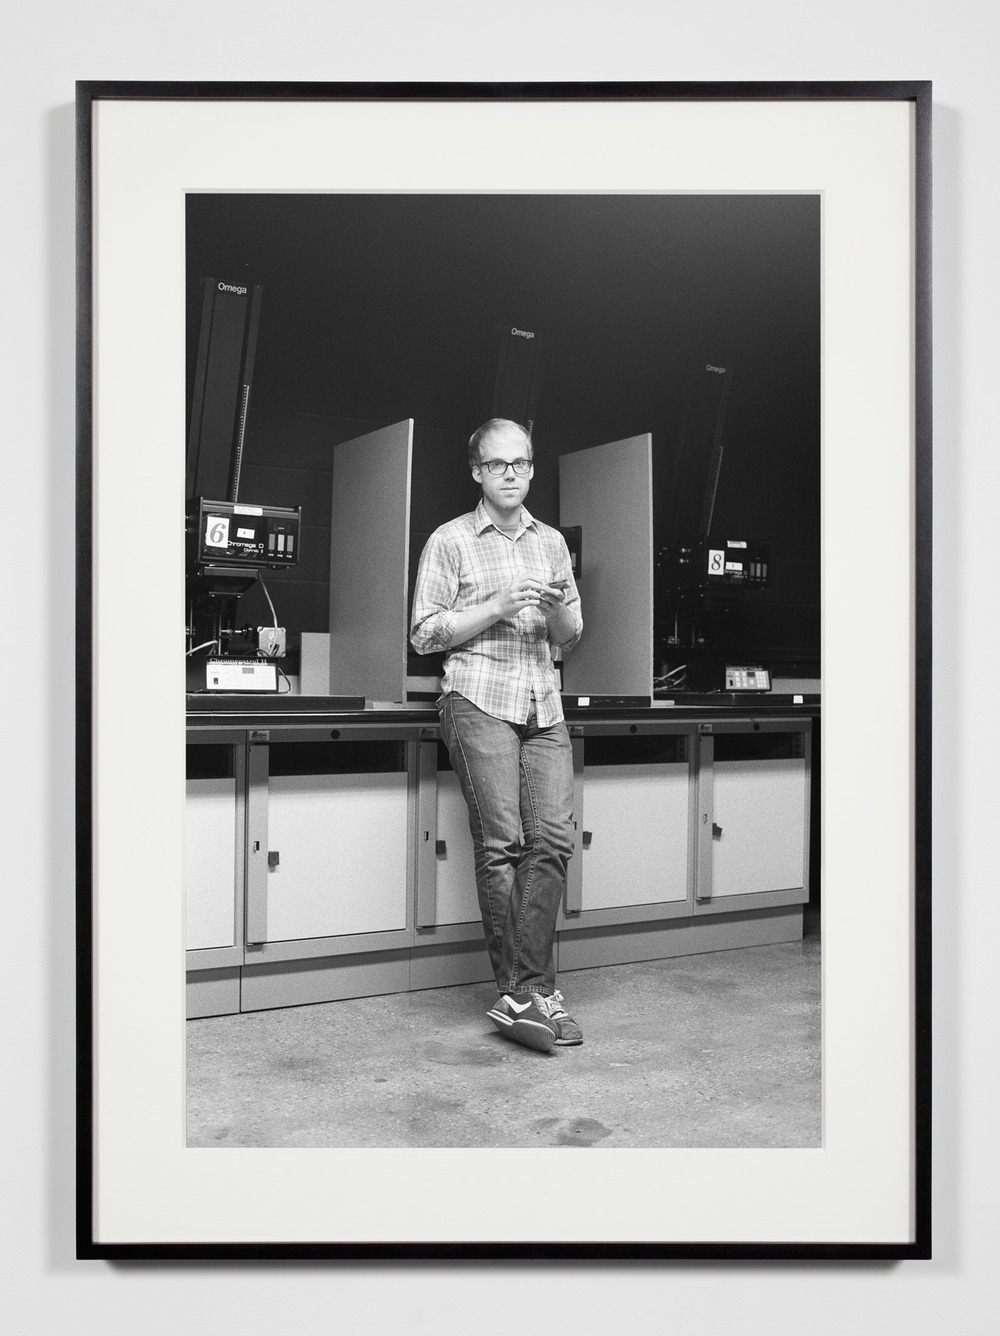 Darkroom Assistant (DE), Chicago, Illinois, August 21, 2008    2009   Epson Ultrachrome K3 archival ink jet print on Hahnemühle Photo Rag paper  36 3/8 x 26 3/8 inches   Industrial Portraits, 2008–